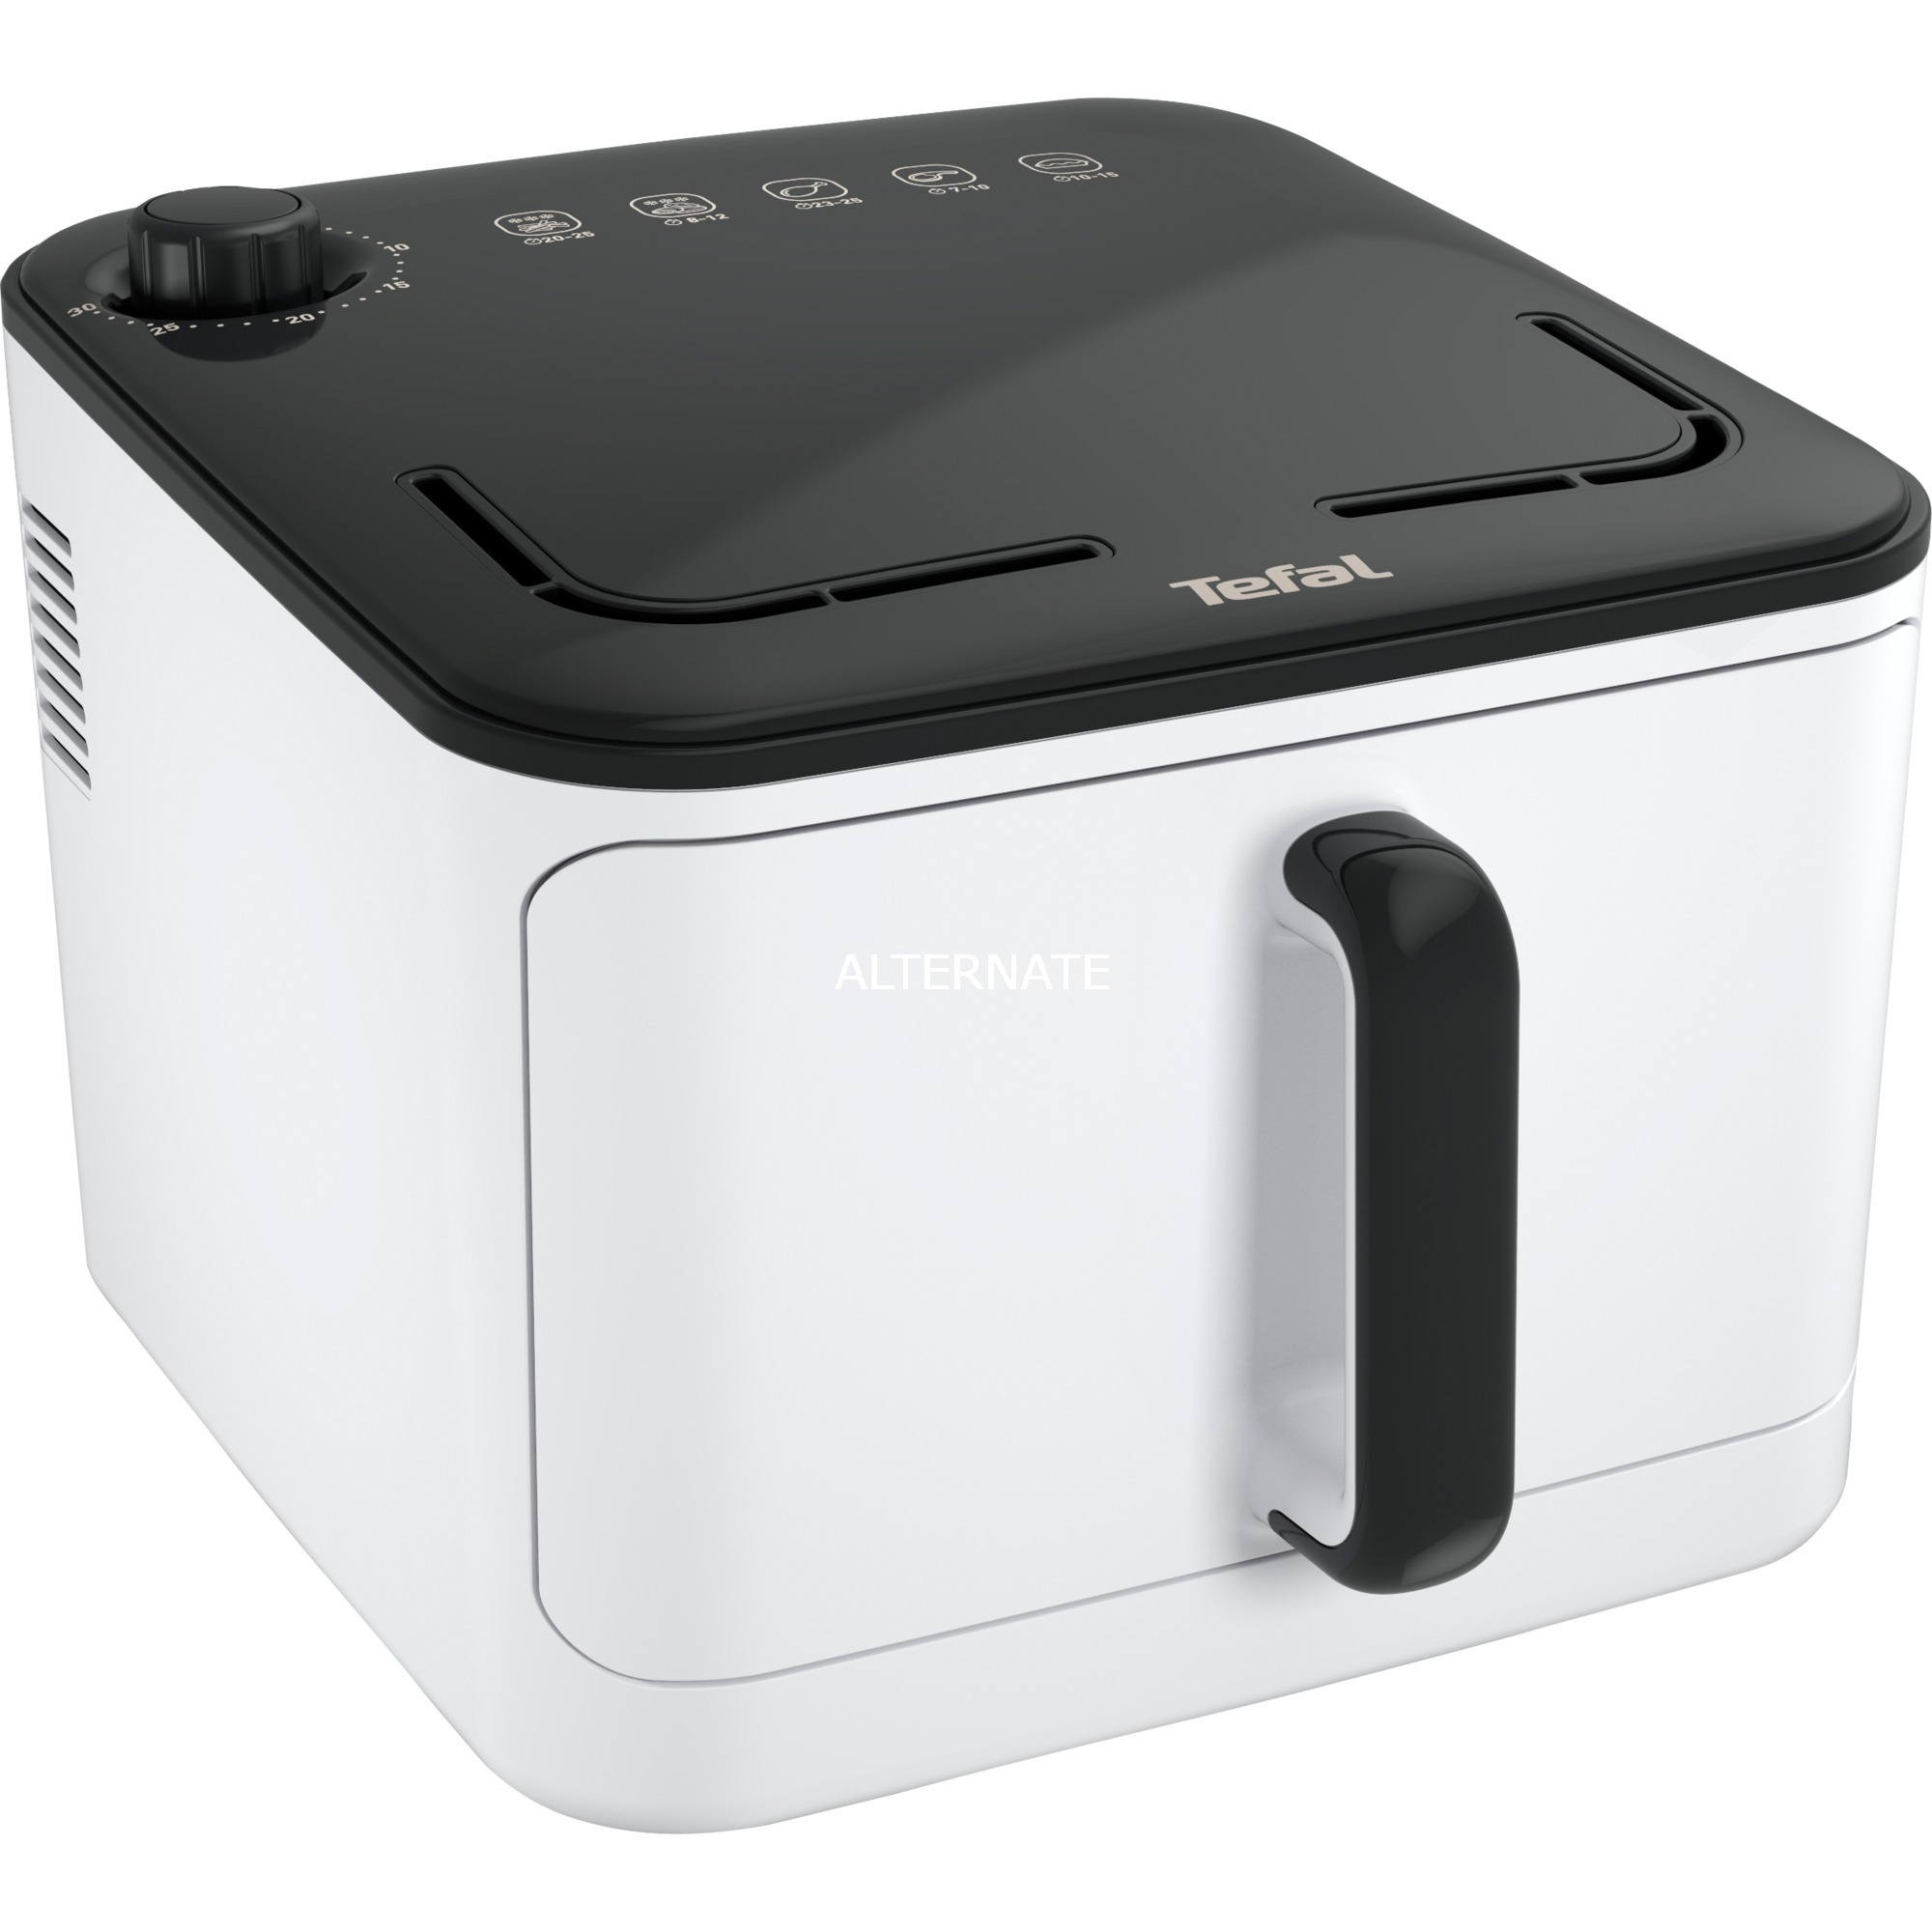 FX10A1 Solo Independiente Hot air fryer 1450W Negro, Color blanco freidora